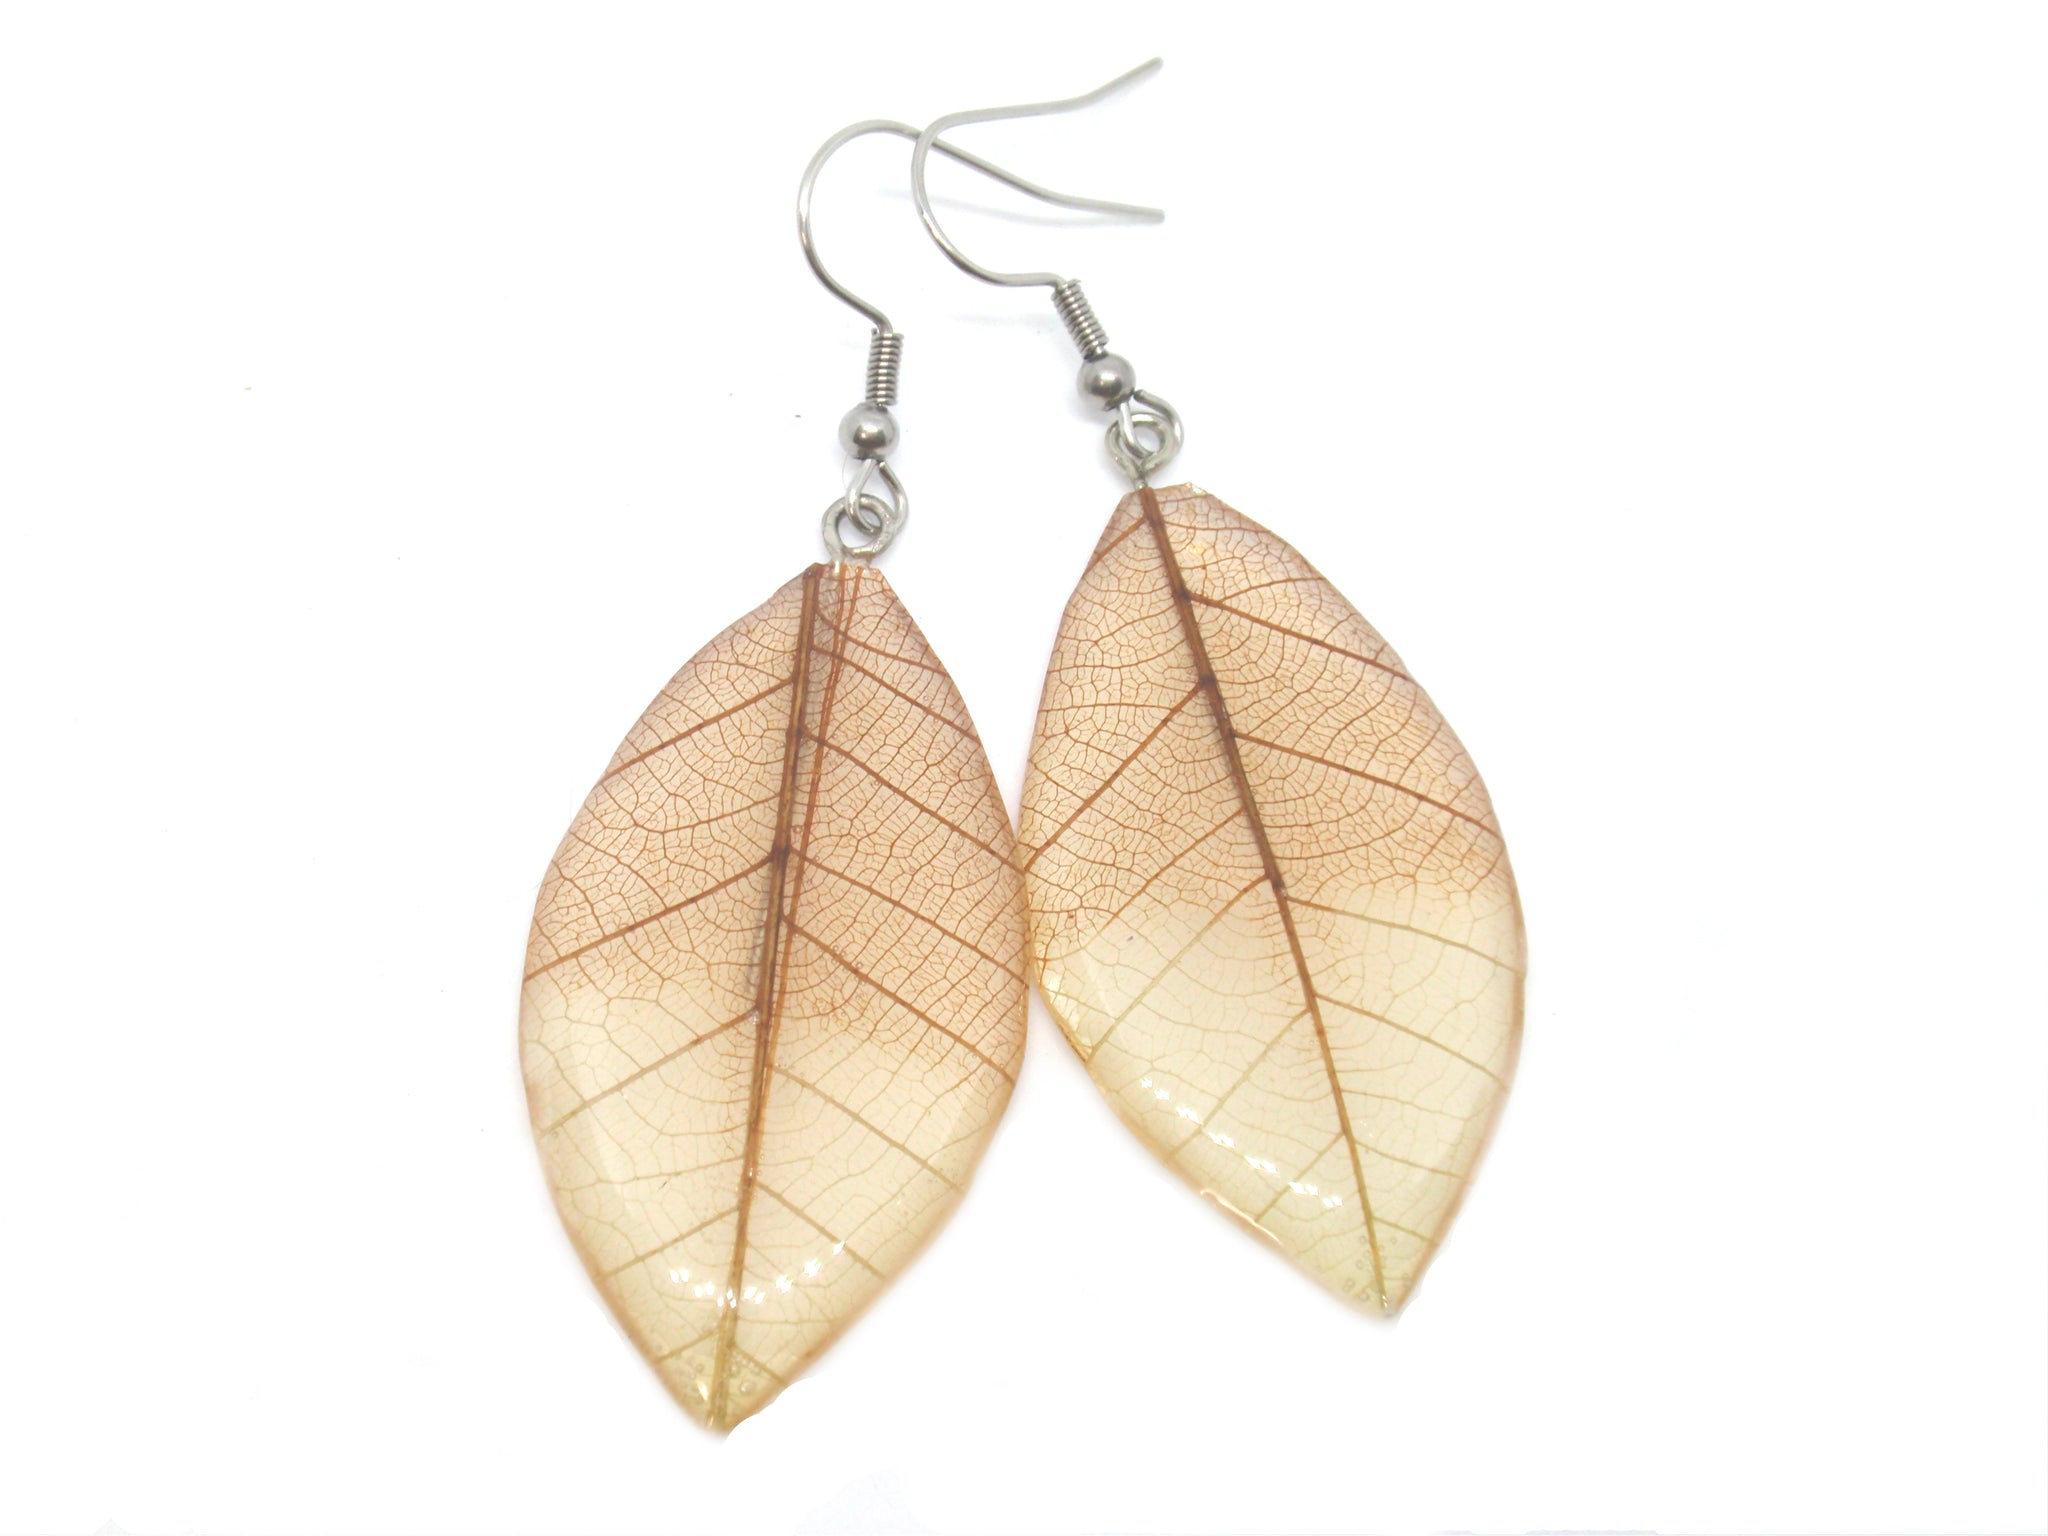 Skeleton leaf earrings